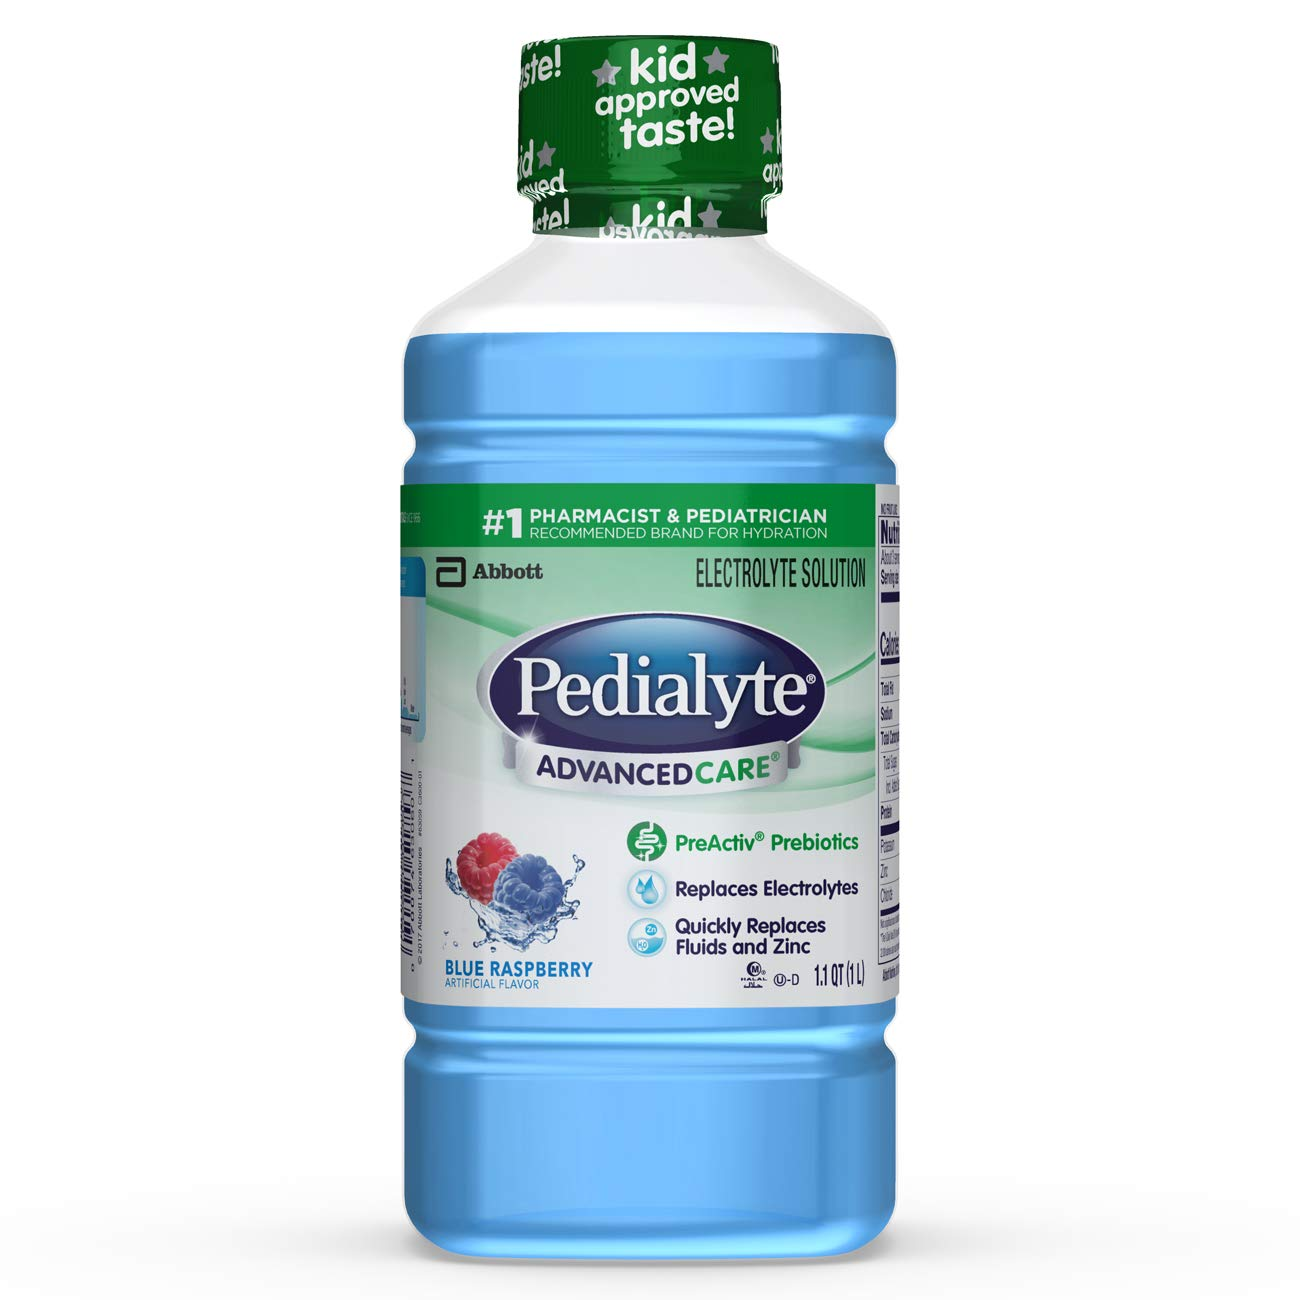 Pedialyte AdvancedCare Electrolyte Solution with PreActiv Prebiotics, Hydration Drink, Strawberry Lemonade, 1 Liter, 4 Count 64301